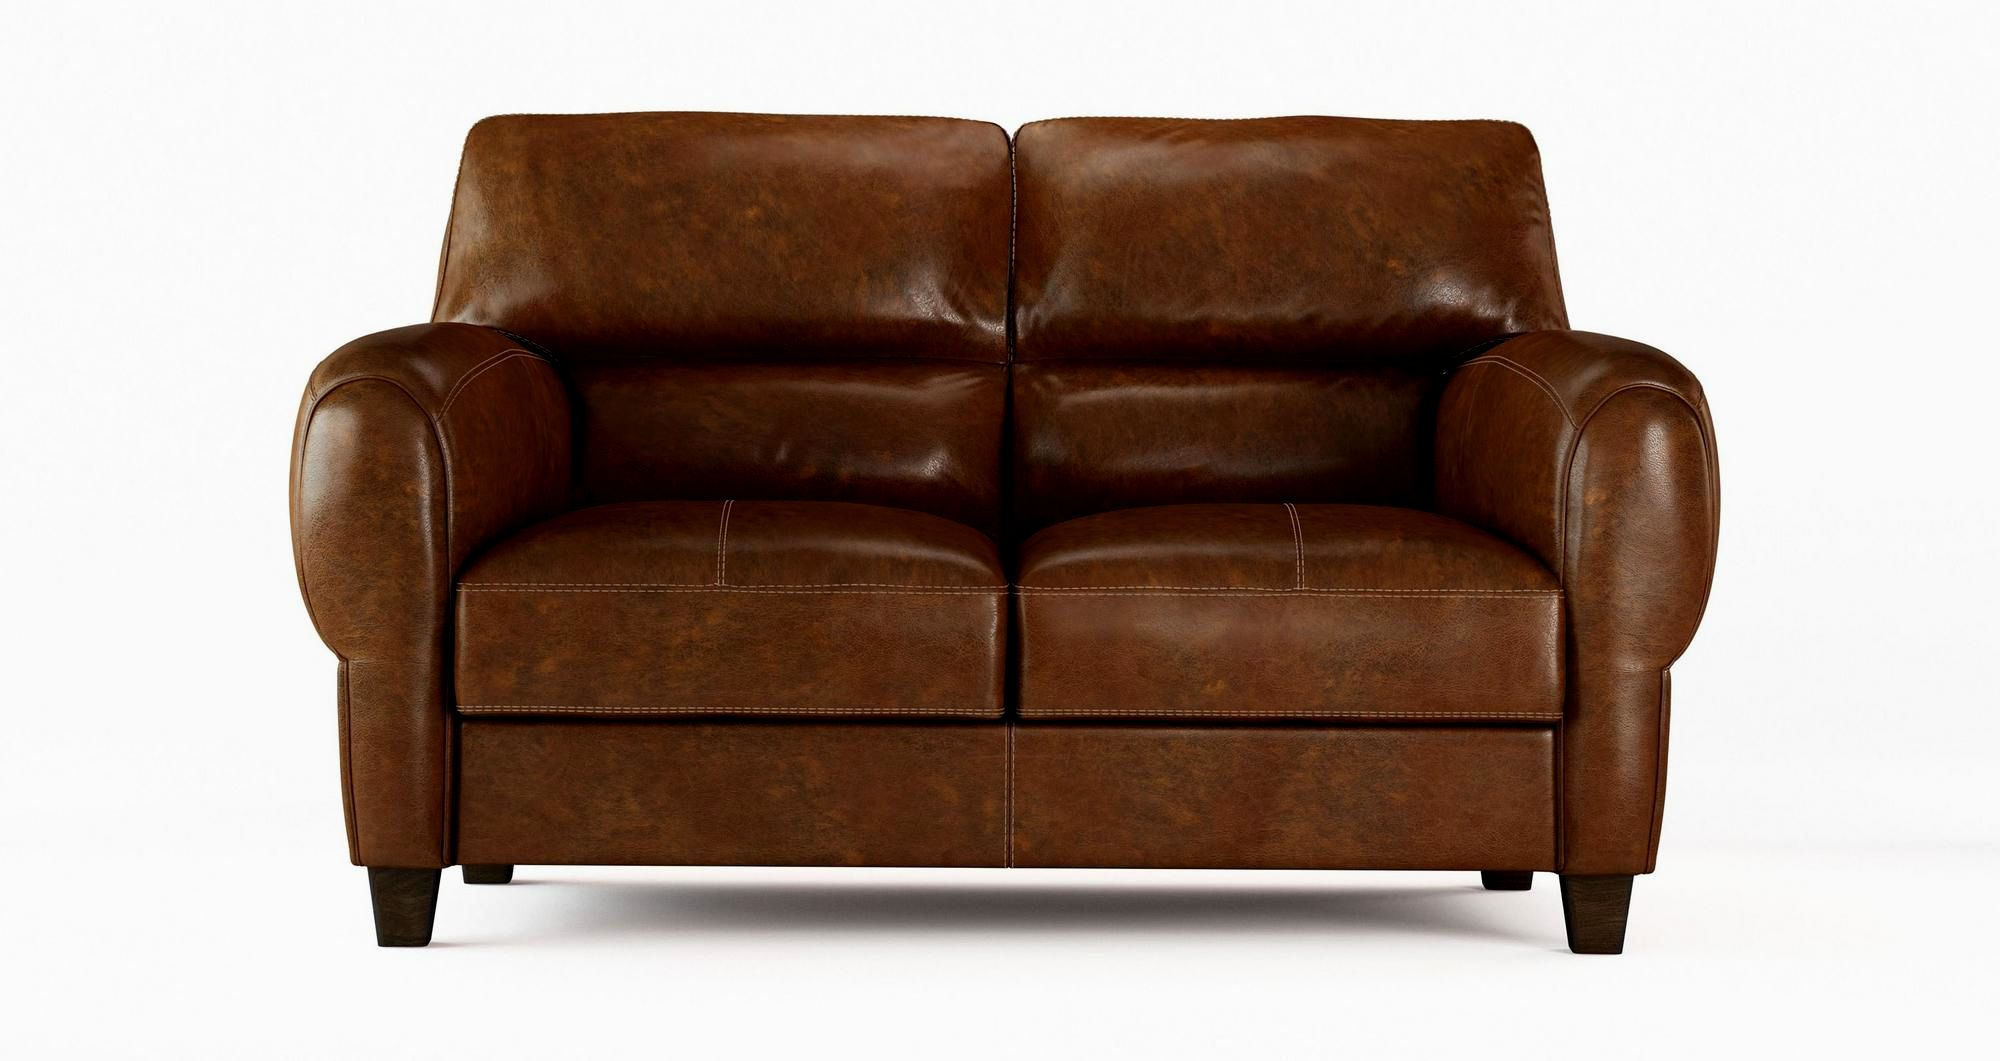 Designer Leather Sofas For Sale Fascinating Leather Sofa For Sale Construction Modern